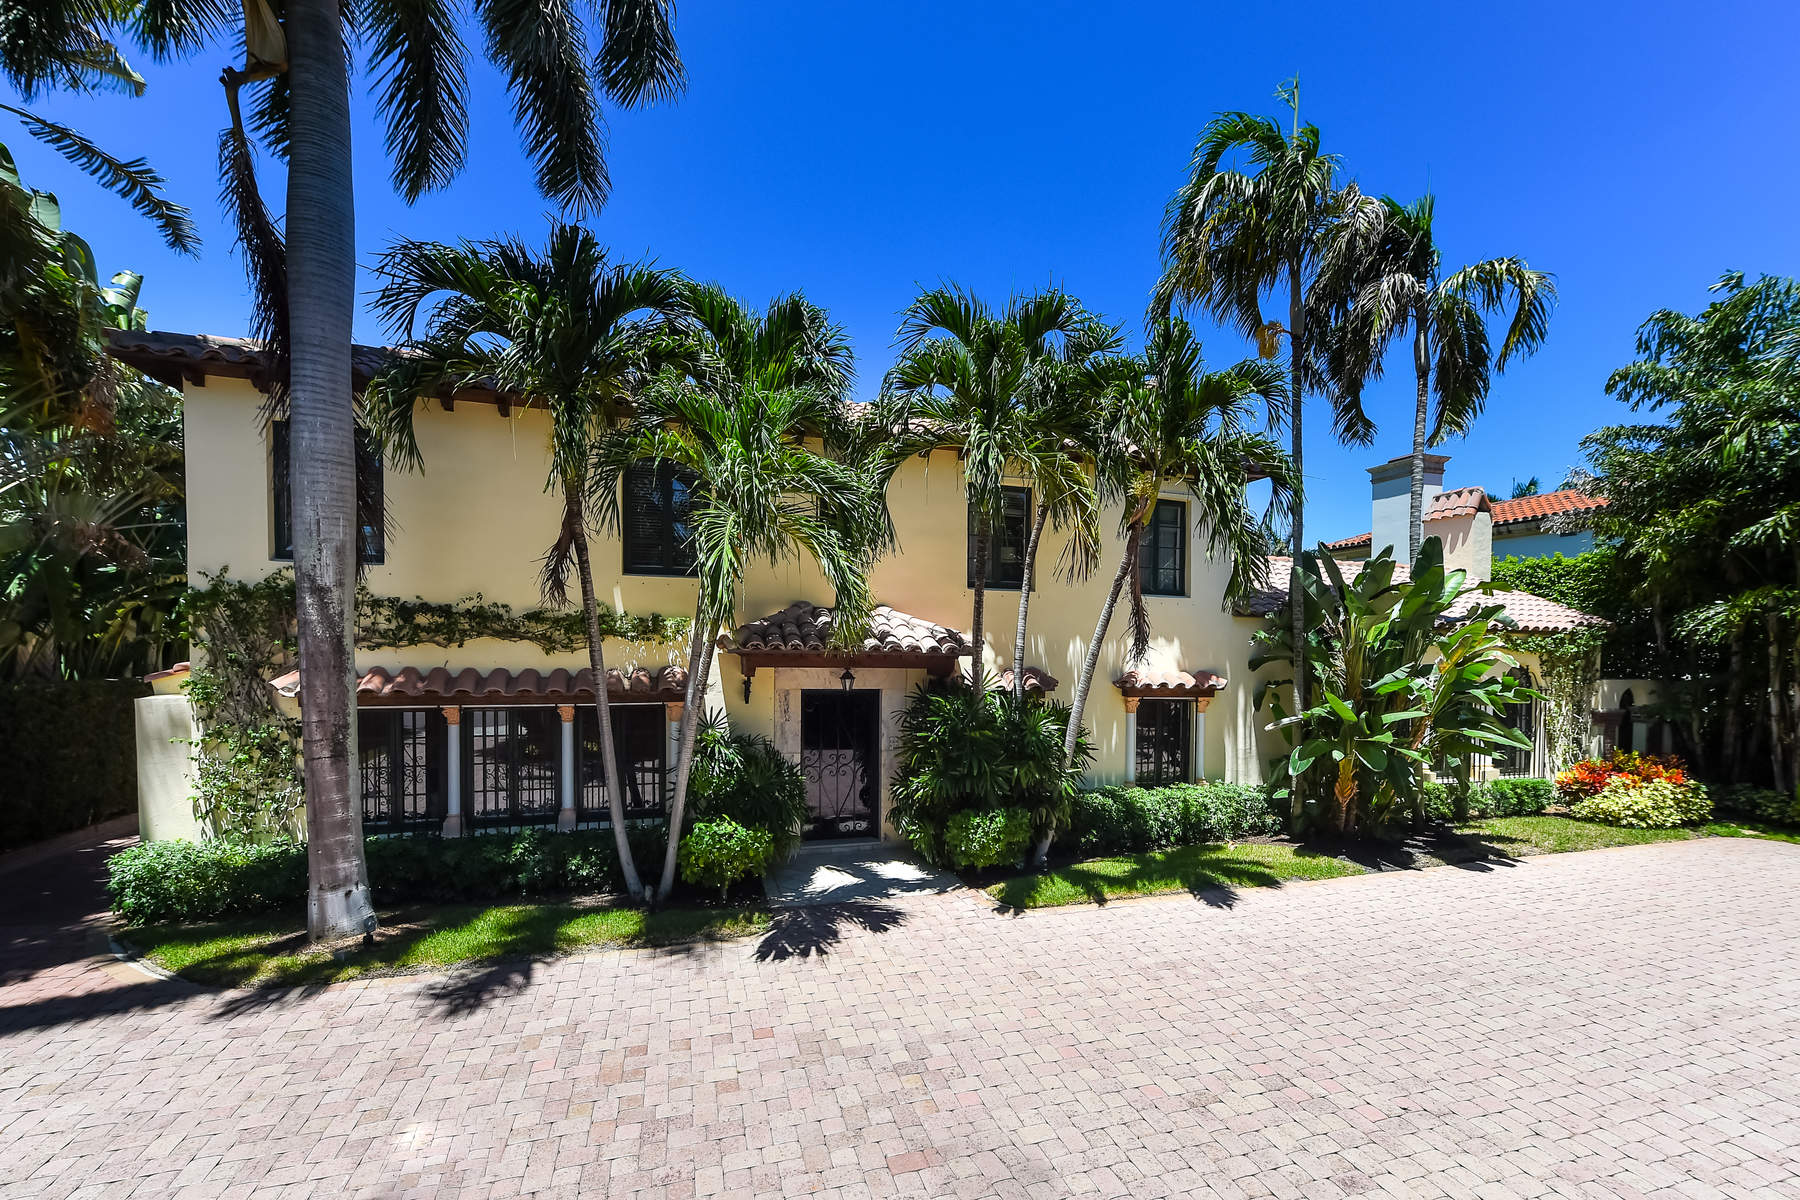 Single Family Home for Sale at Magnificent Mediterranean House 235 Dunbar Rd, Palm Beach, Florida, 33480 United States